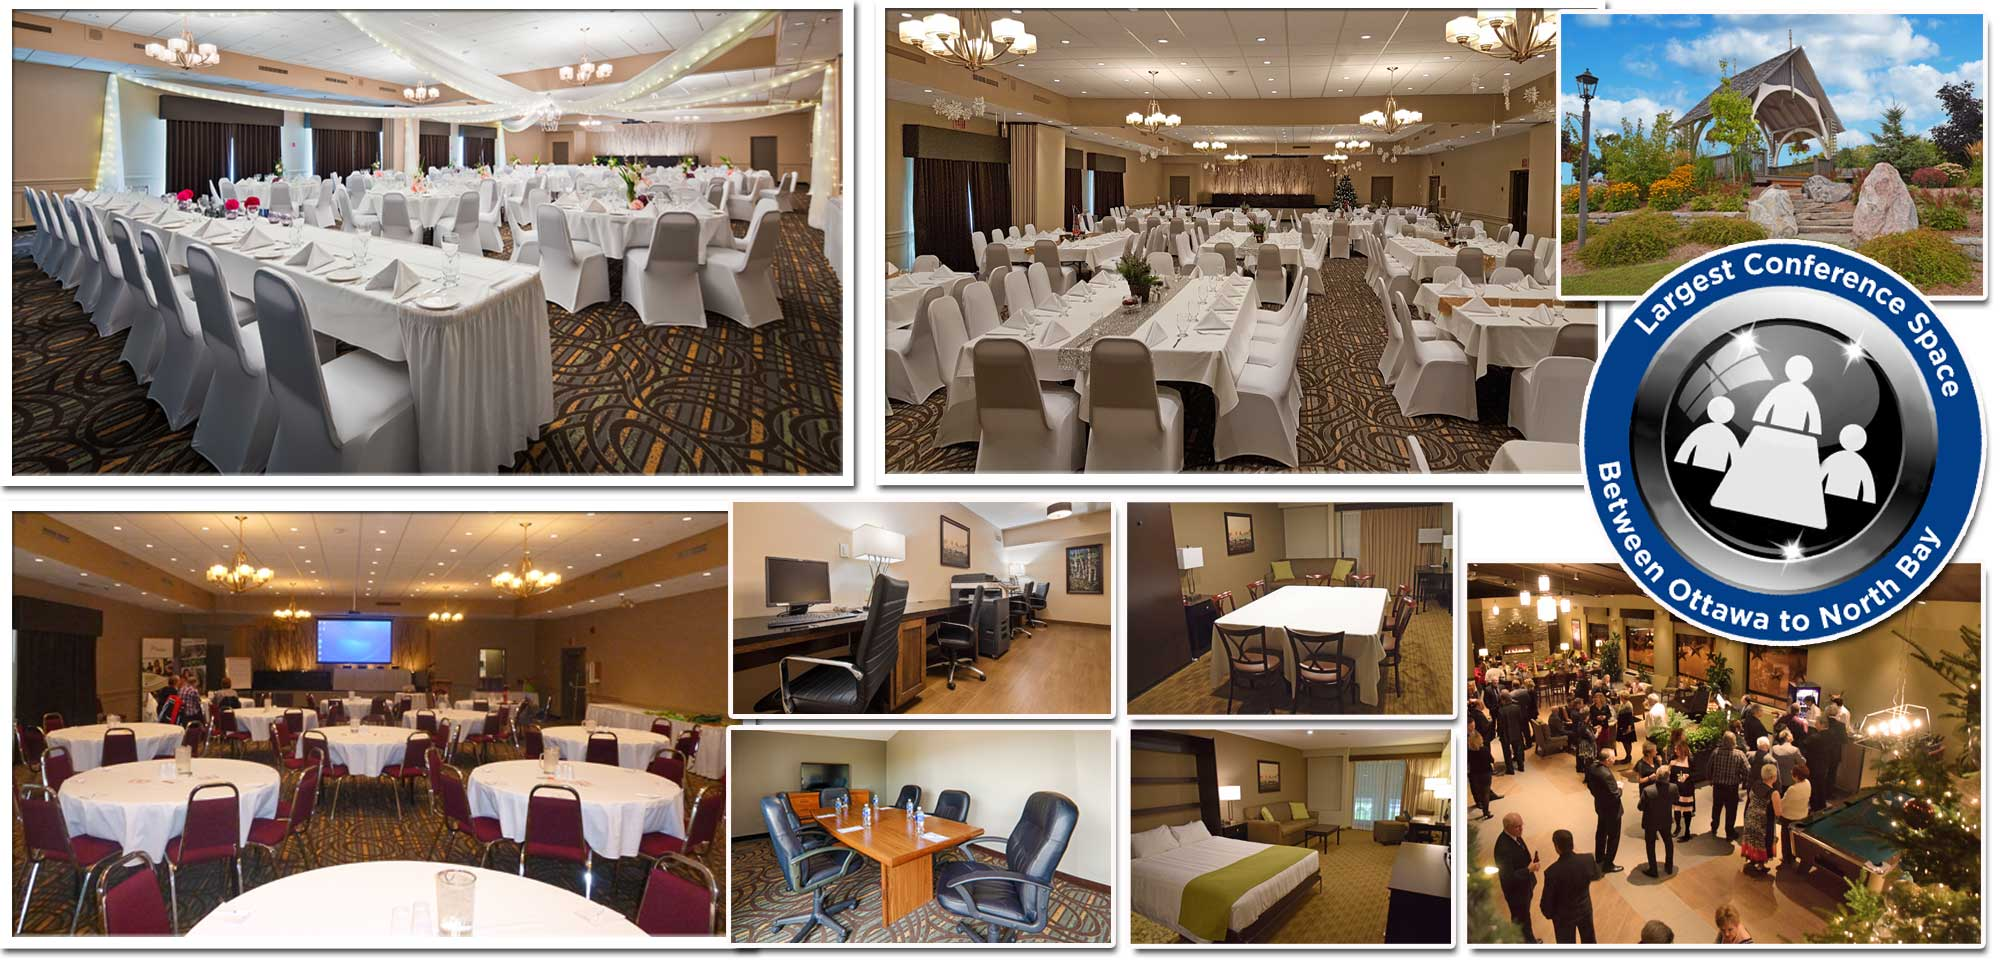 Over 9,000 Square Feet of Conference Space